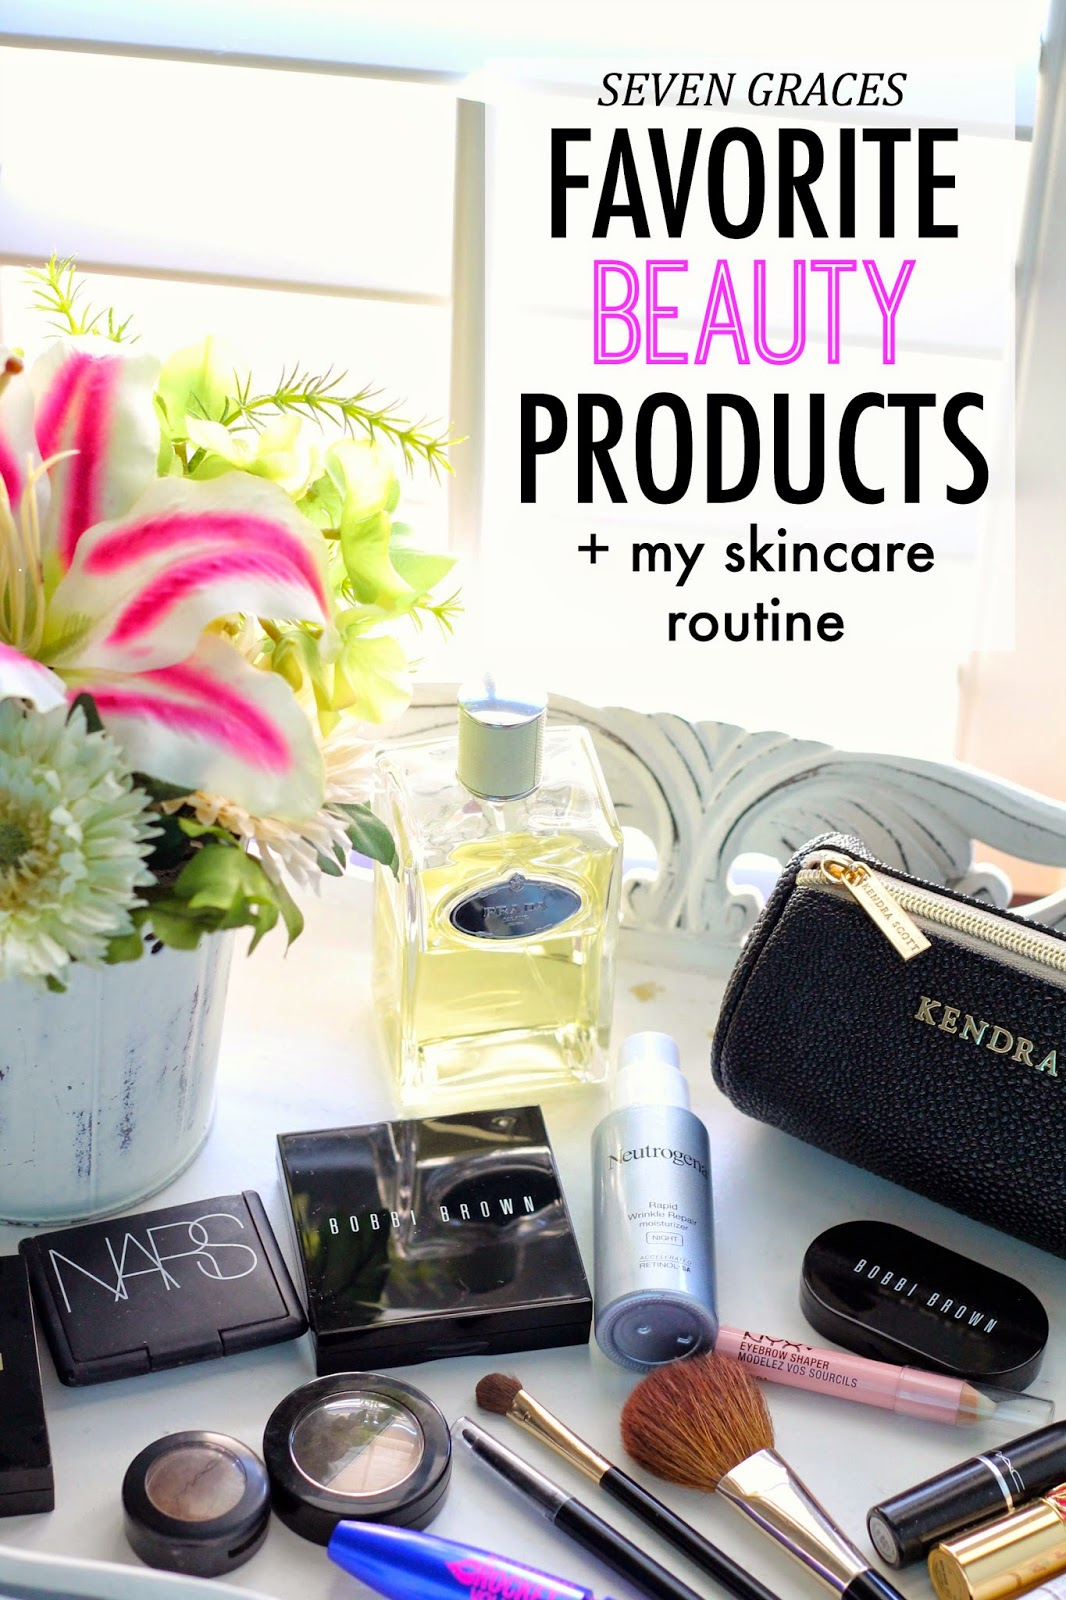 Favorite Beauty Products My Skincare Routine Seven Graces